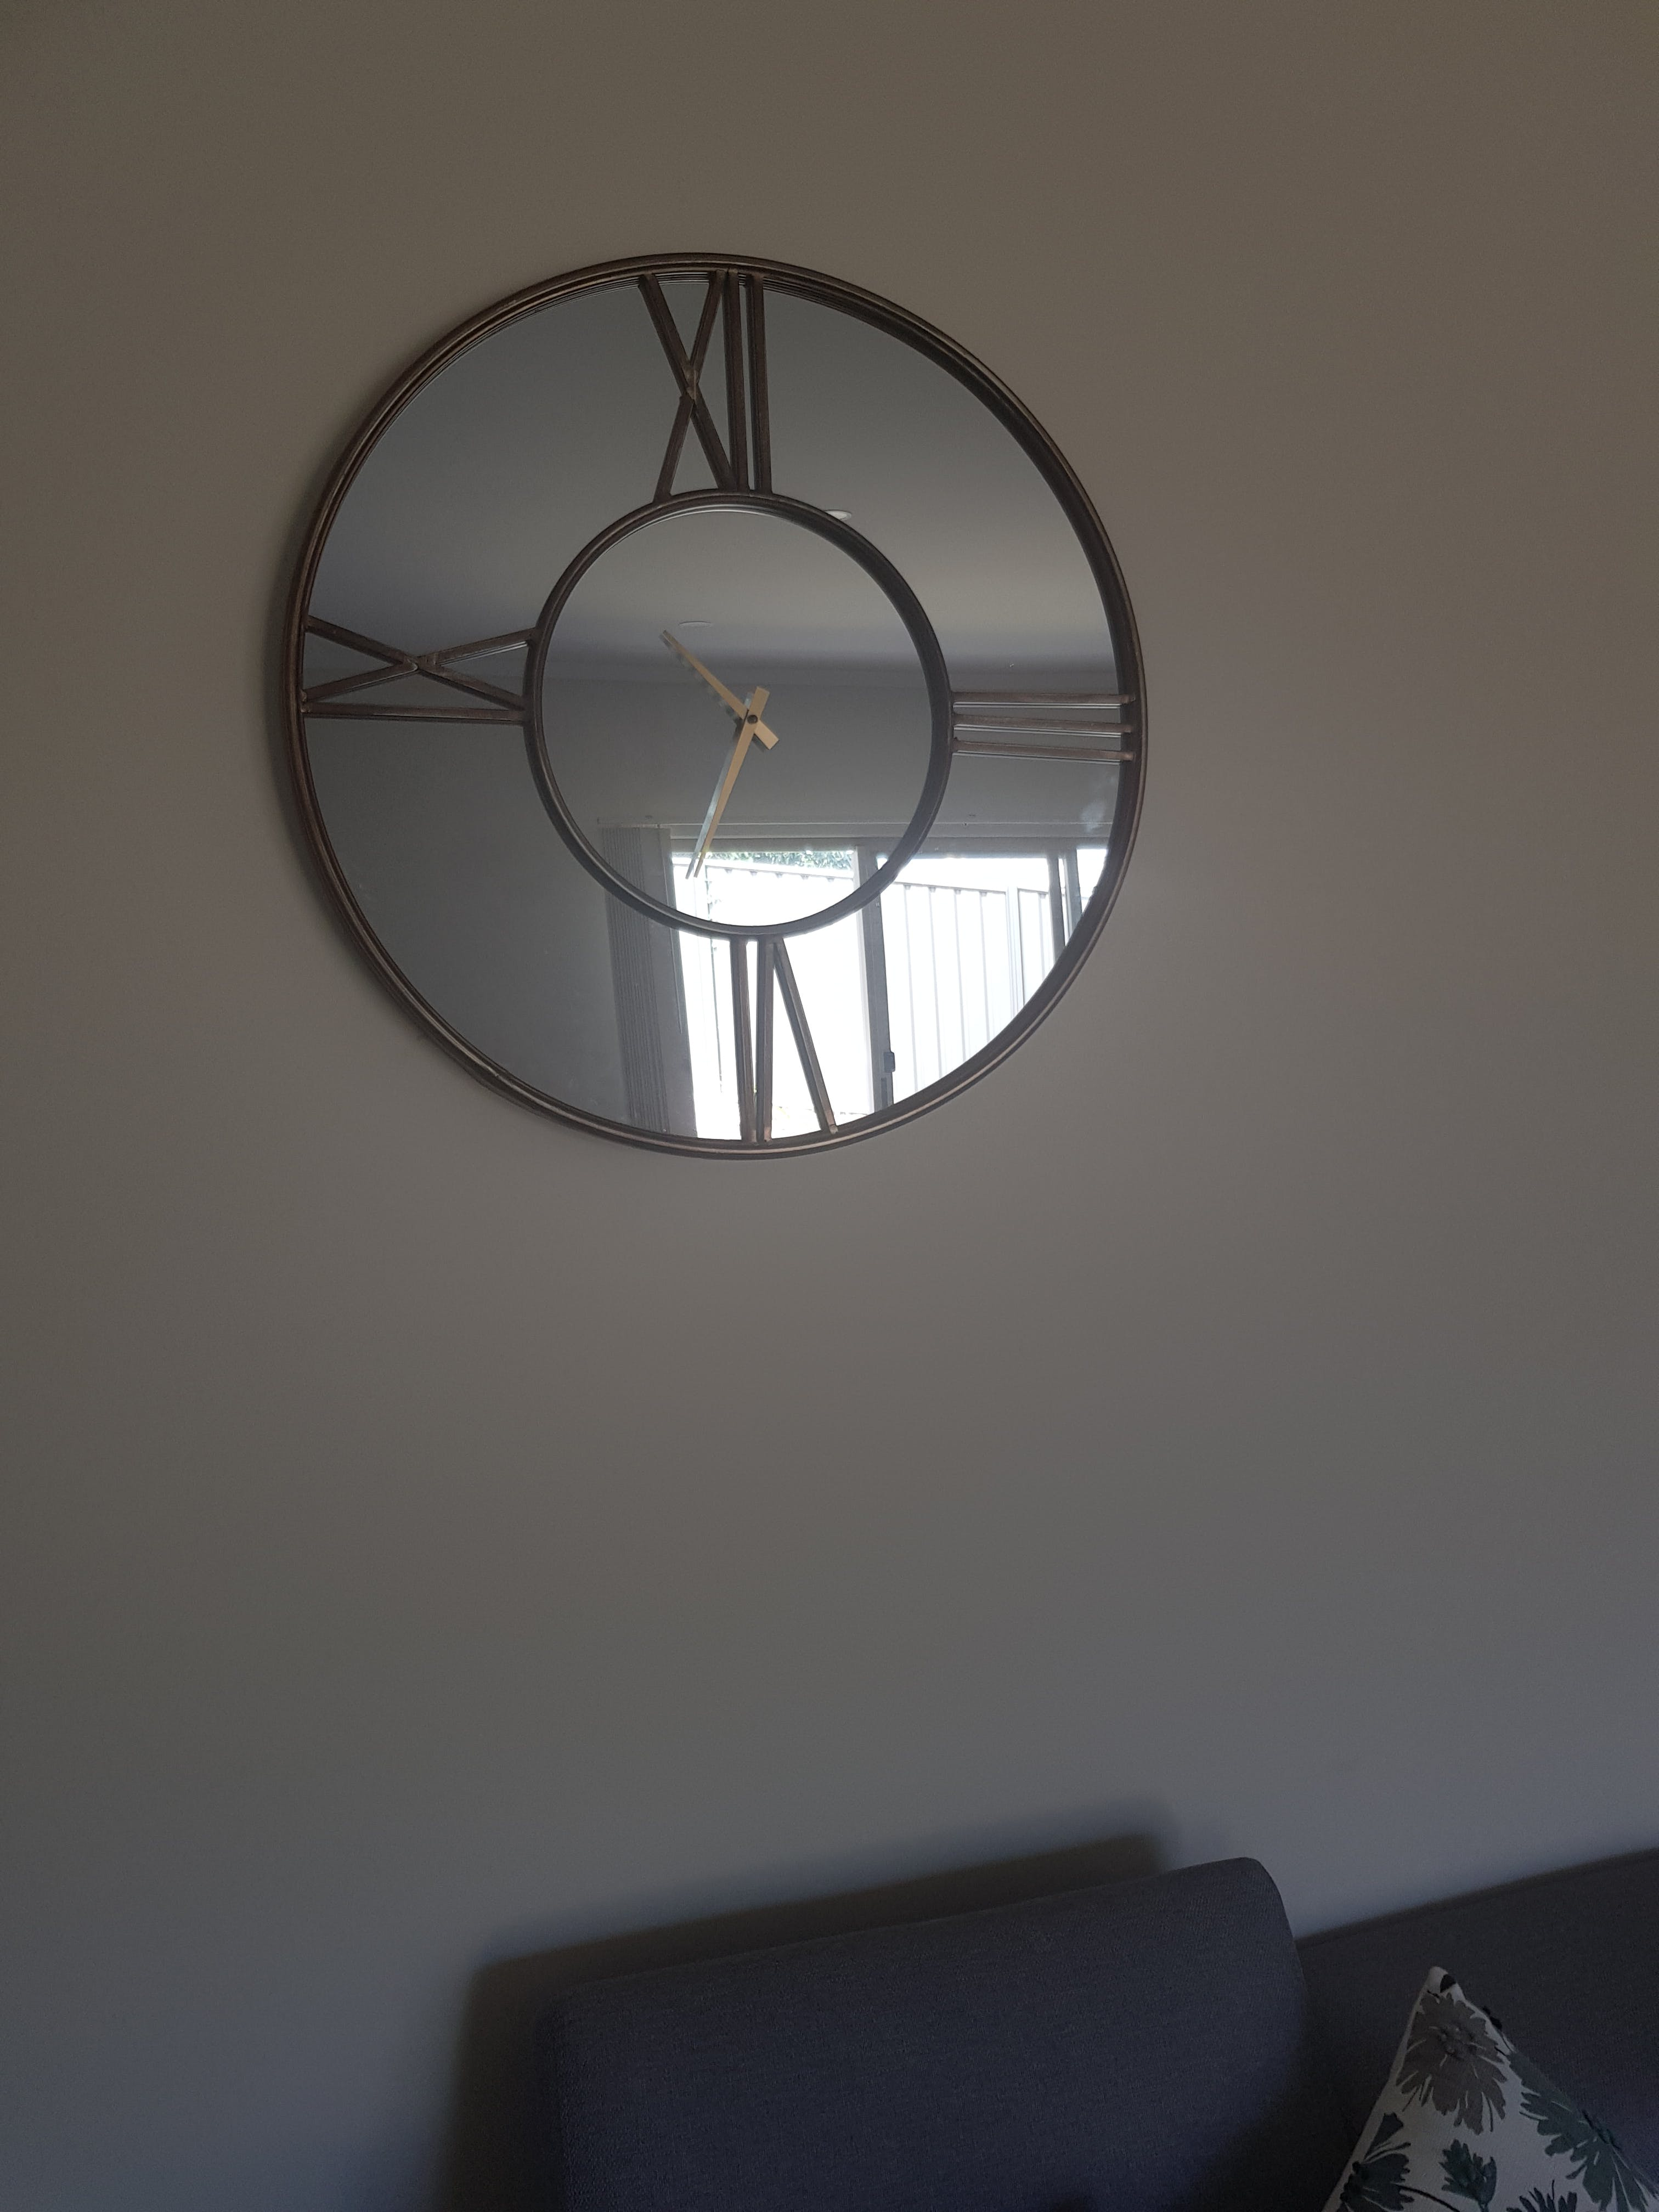 Mirrored Contemporary Round Wall Clock, 70cm